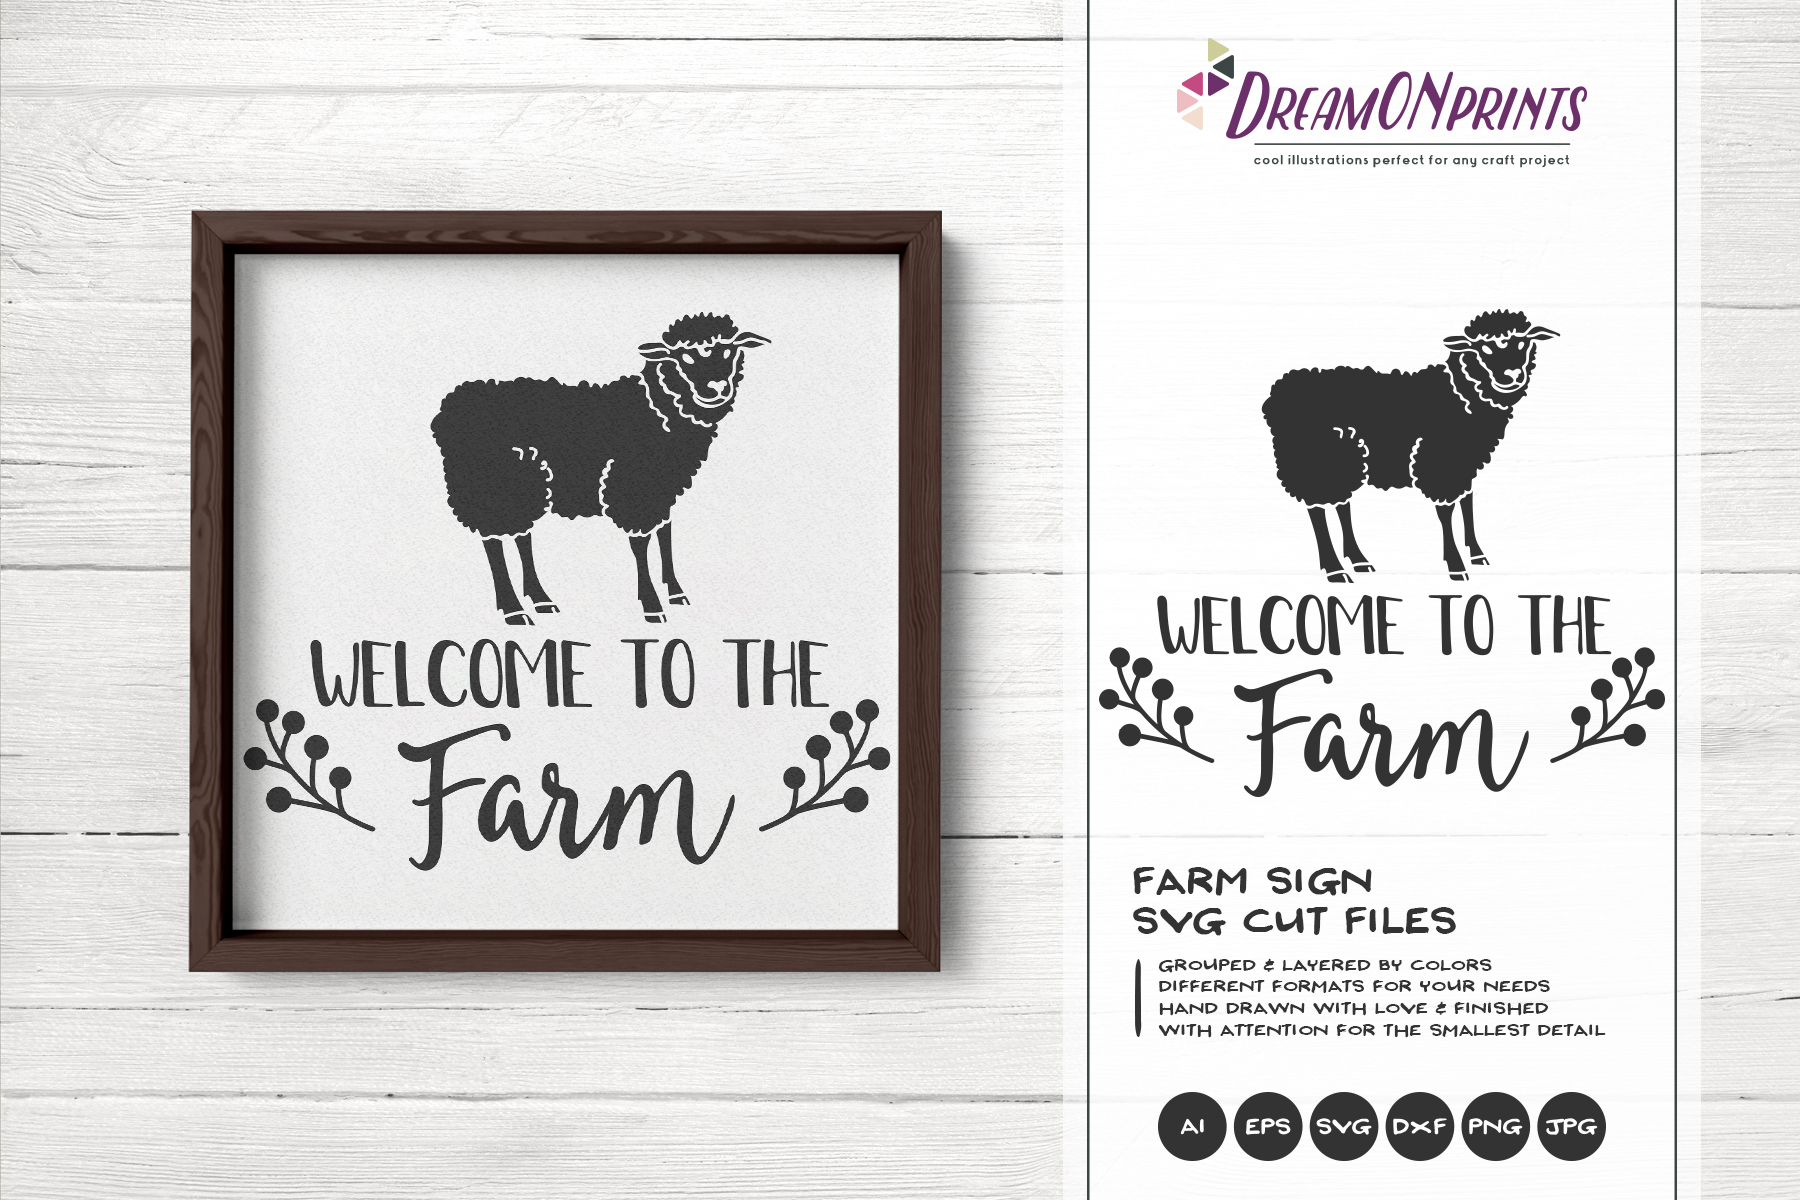 Welcome to the Farm SVG - Sheep SVG Cut Files example image 1